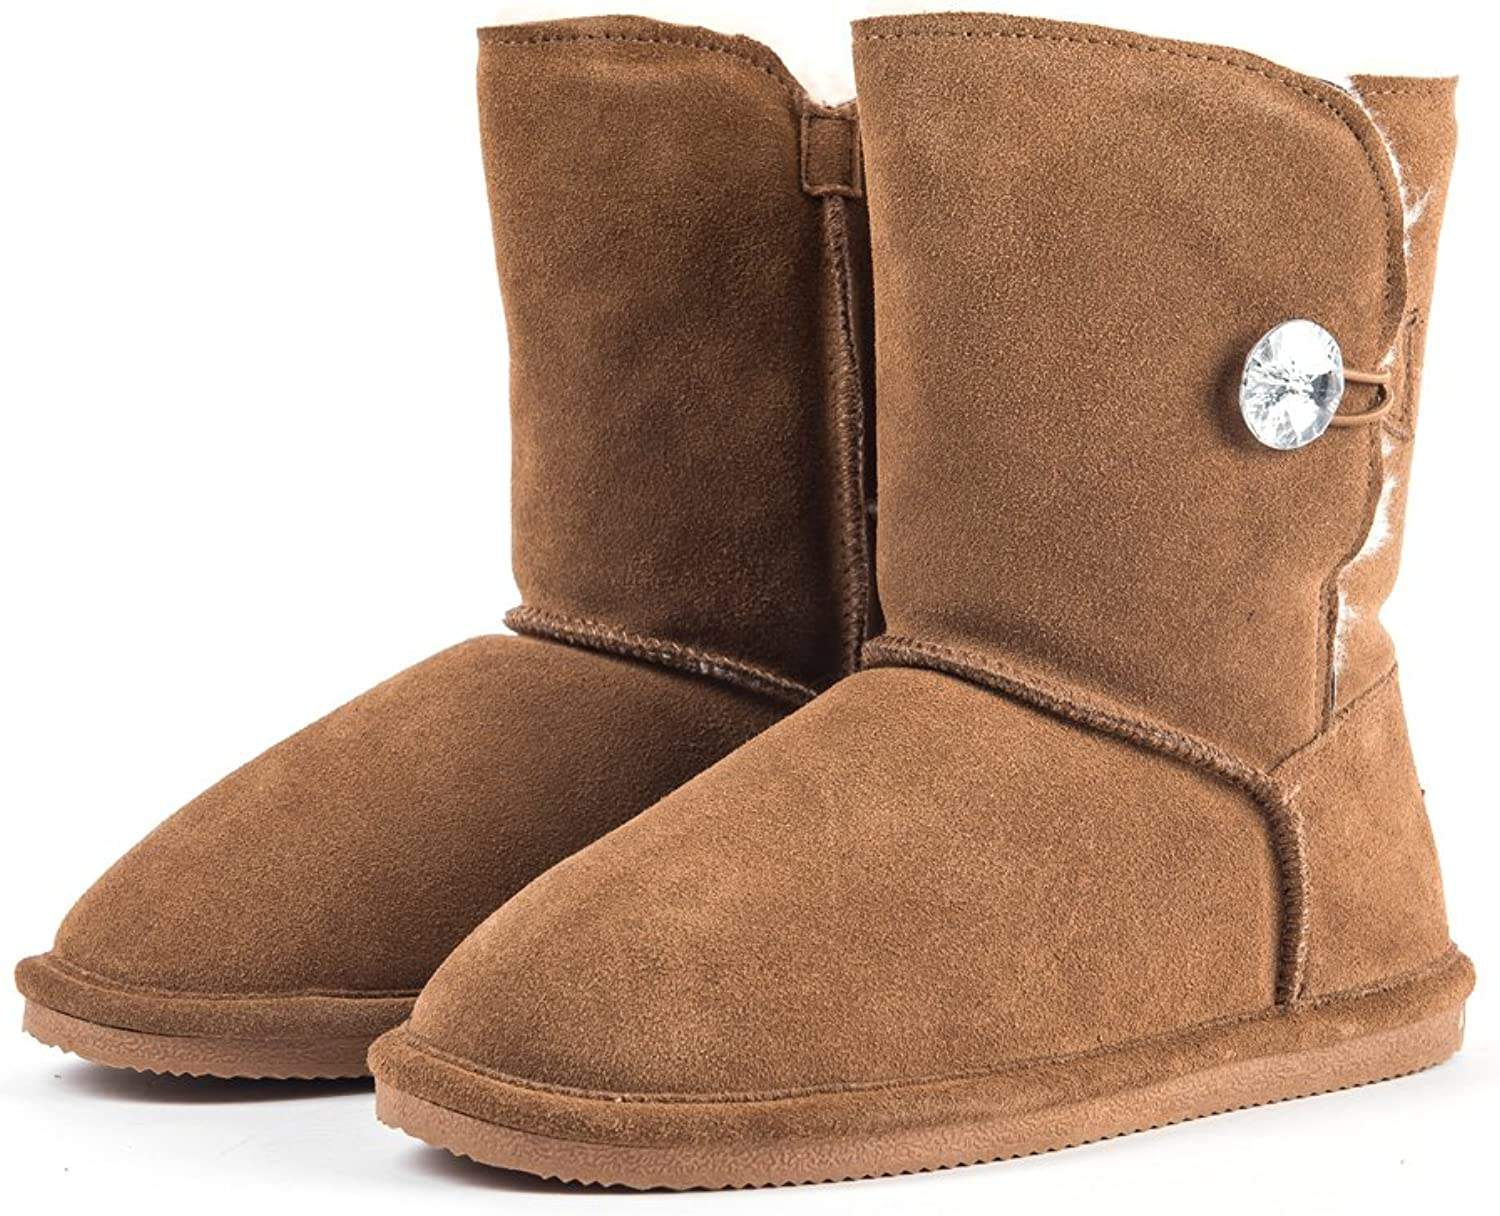 Amelia Women's Imitated Crystal Buttons Australian Sheepskin Short Snow Boots